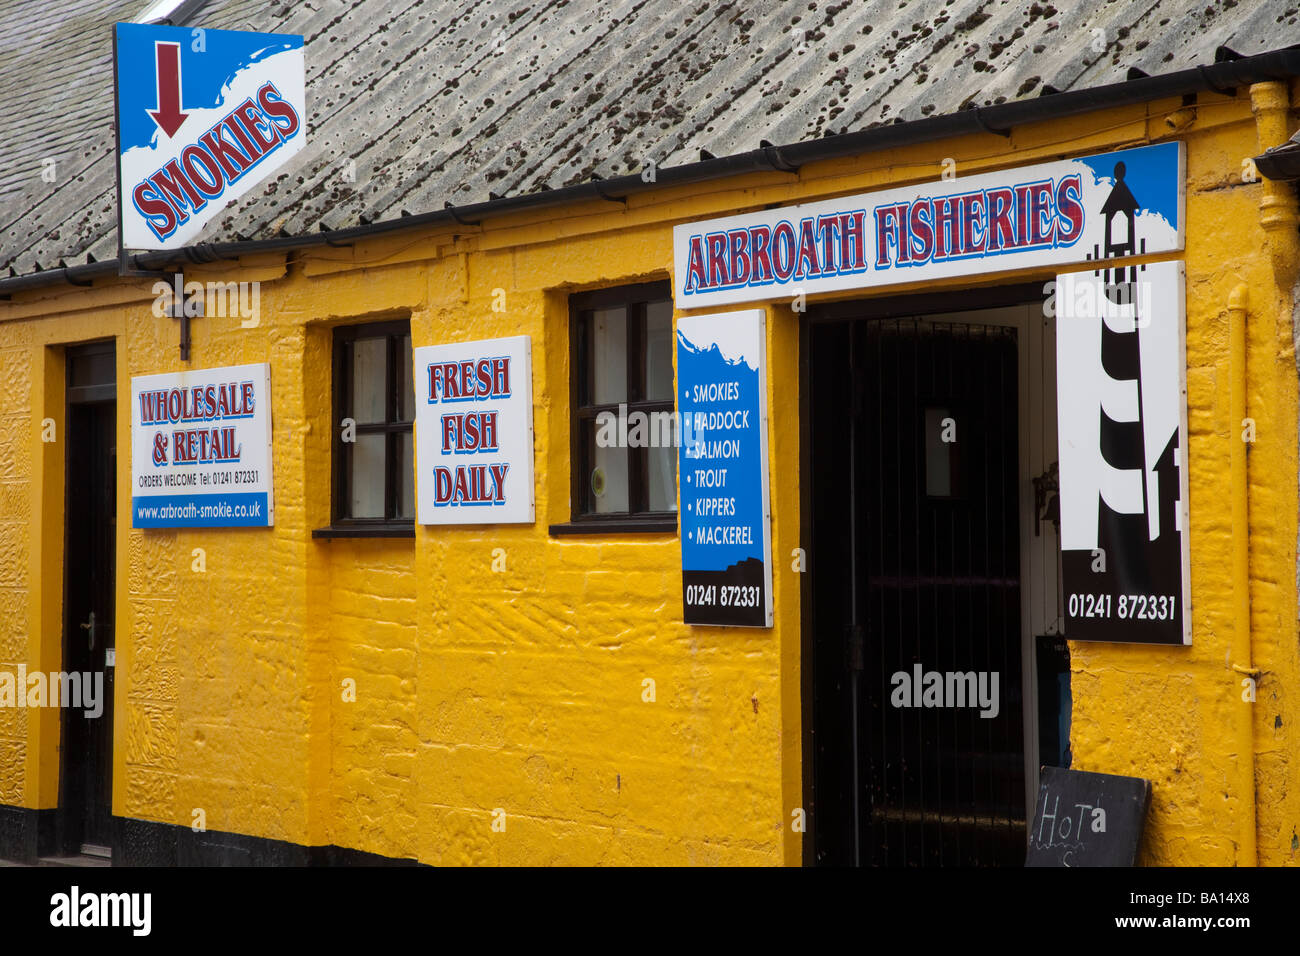 Arbroath Smokies Wholesale and Retail,  Seafood Shop in Arbroath, selling fresh fish daily, Scotland, UK - Stock Image